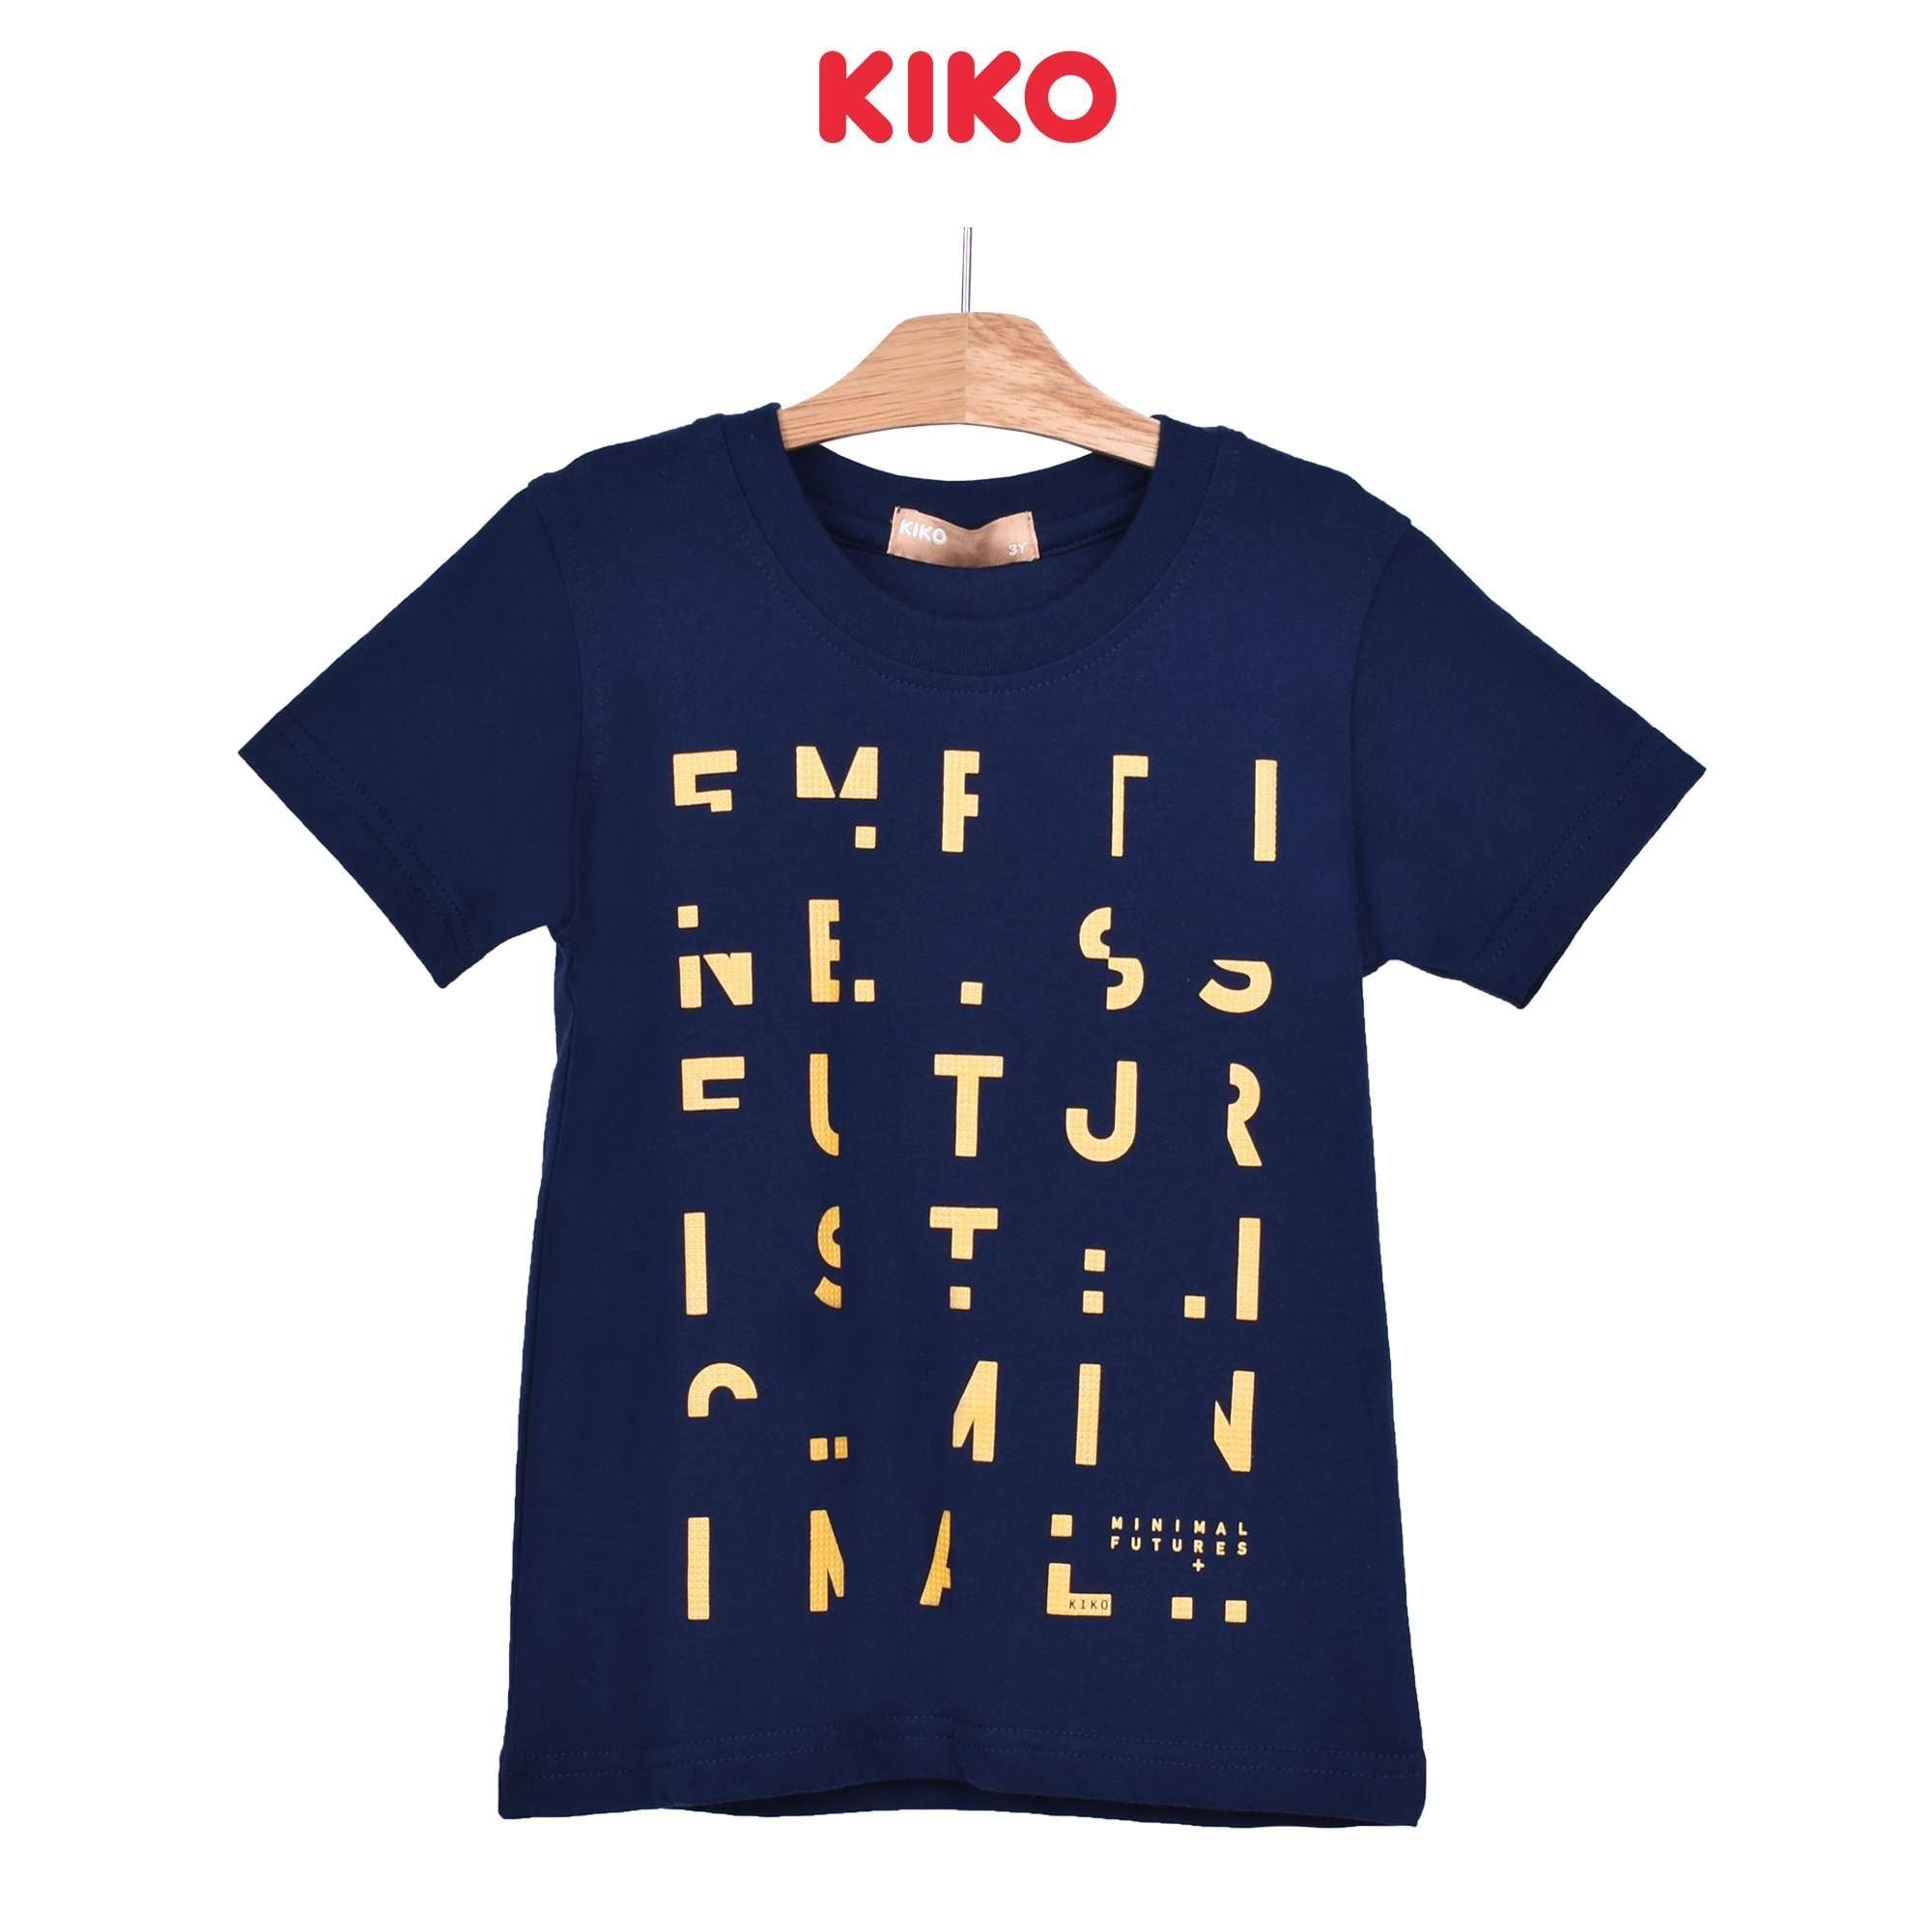 KIKO Boy Round Neck Short Sleeve Tee - Navy 121248-111 : Buy KIKO online at CMG.MY